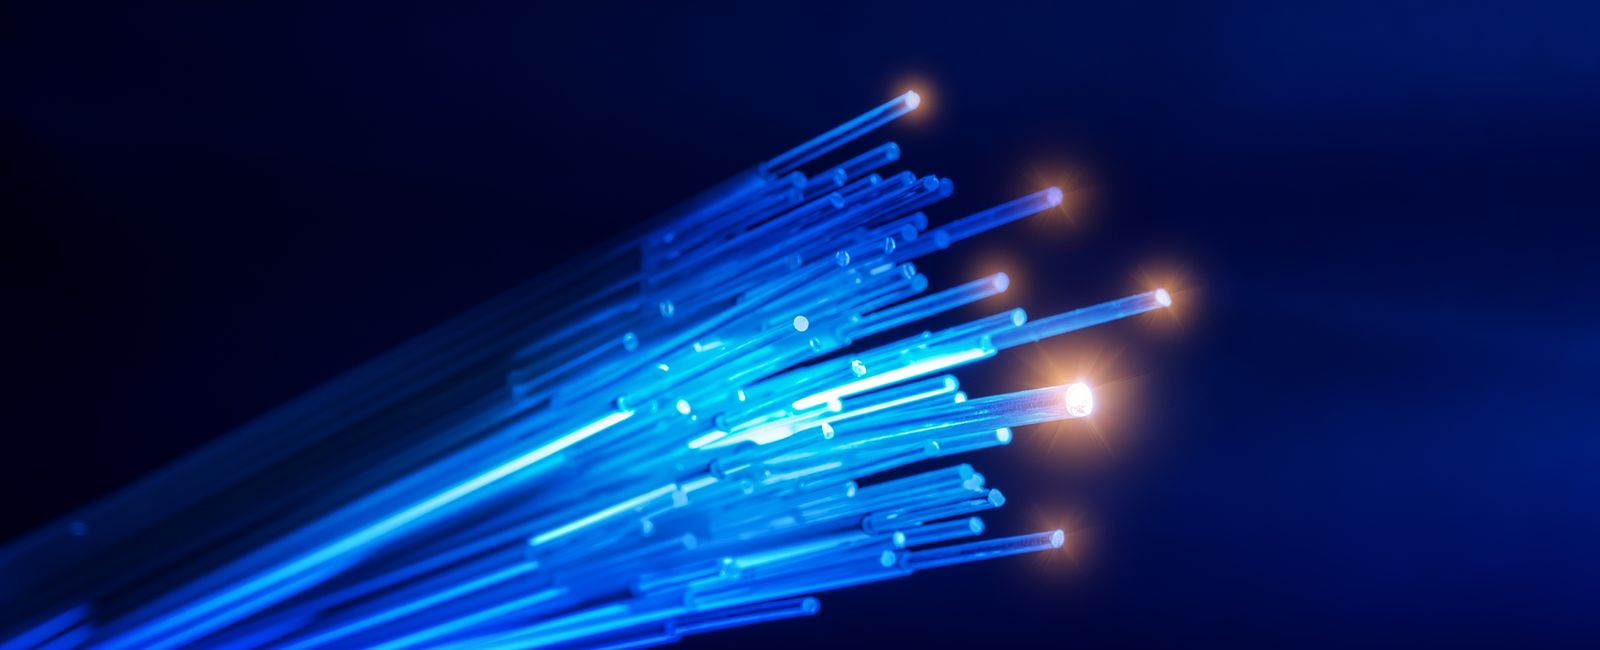 5-unique-benefits-of-fiber-optic-cable